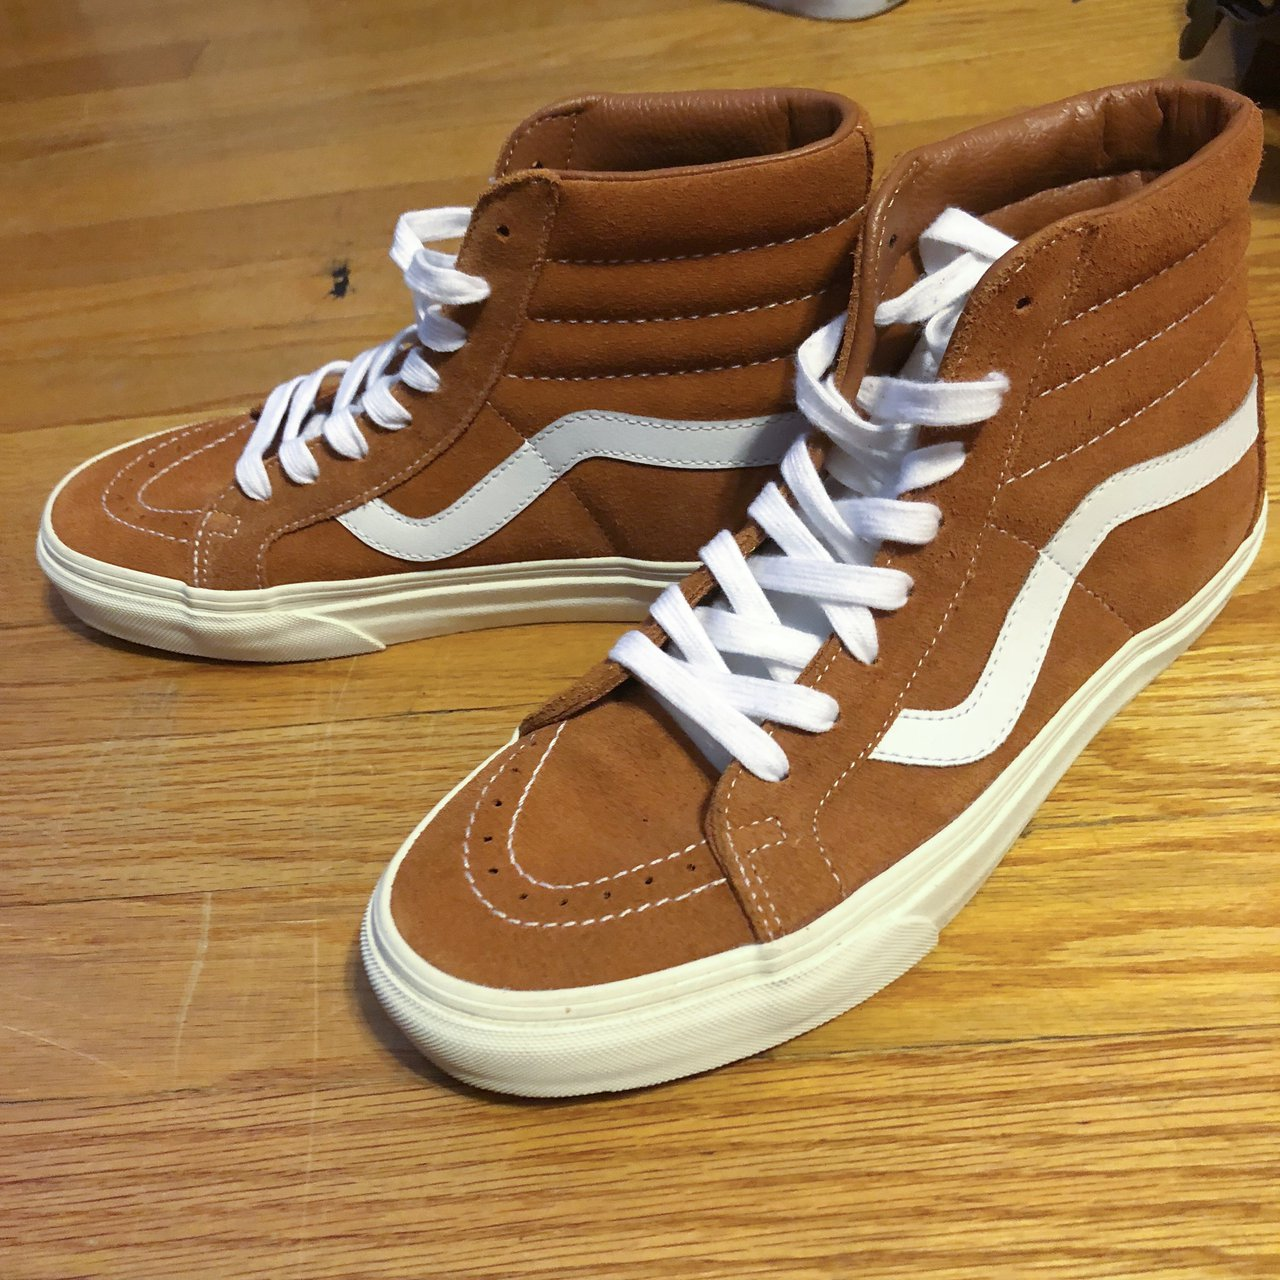 d32a24737940 brand new tan brown suede Vans.  55. Vans suede chukka low Good condition